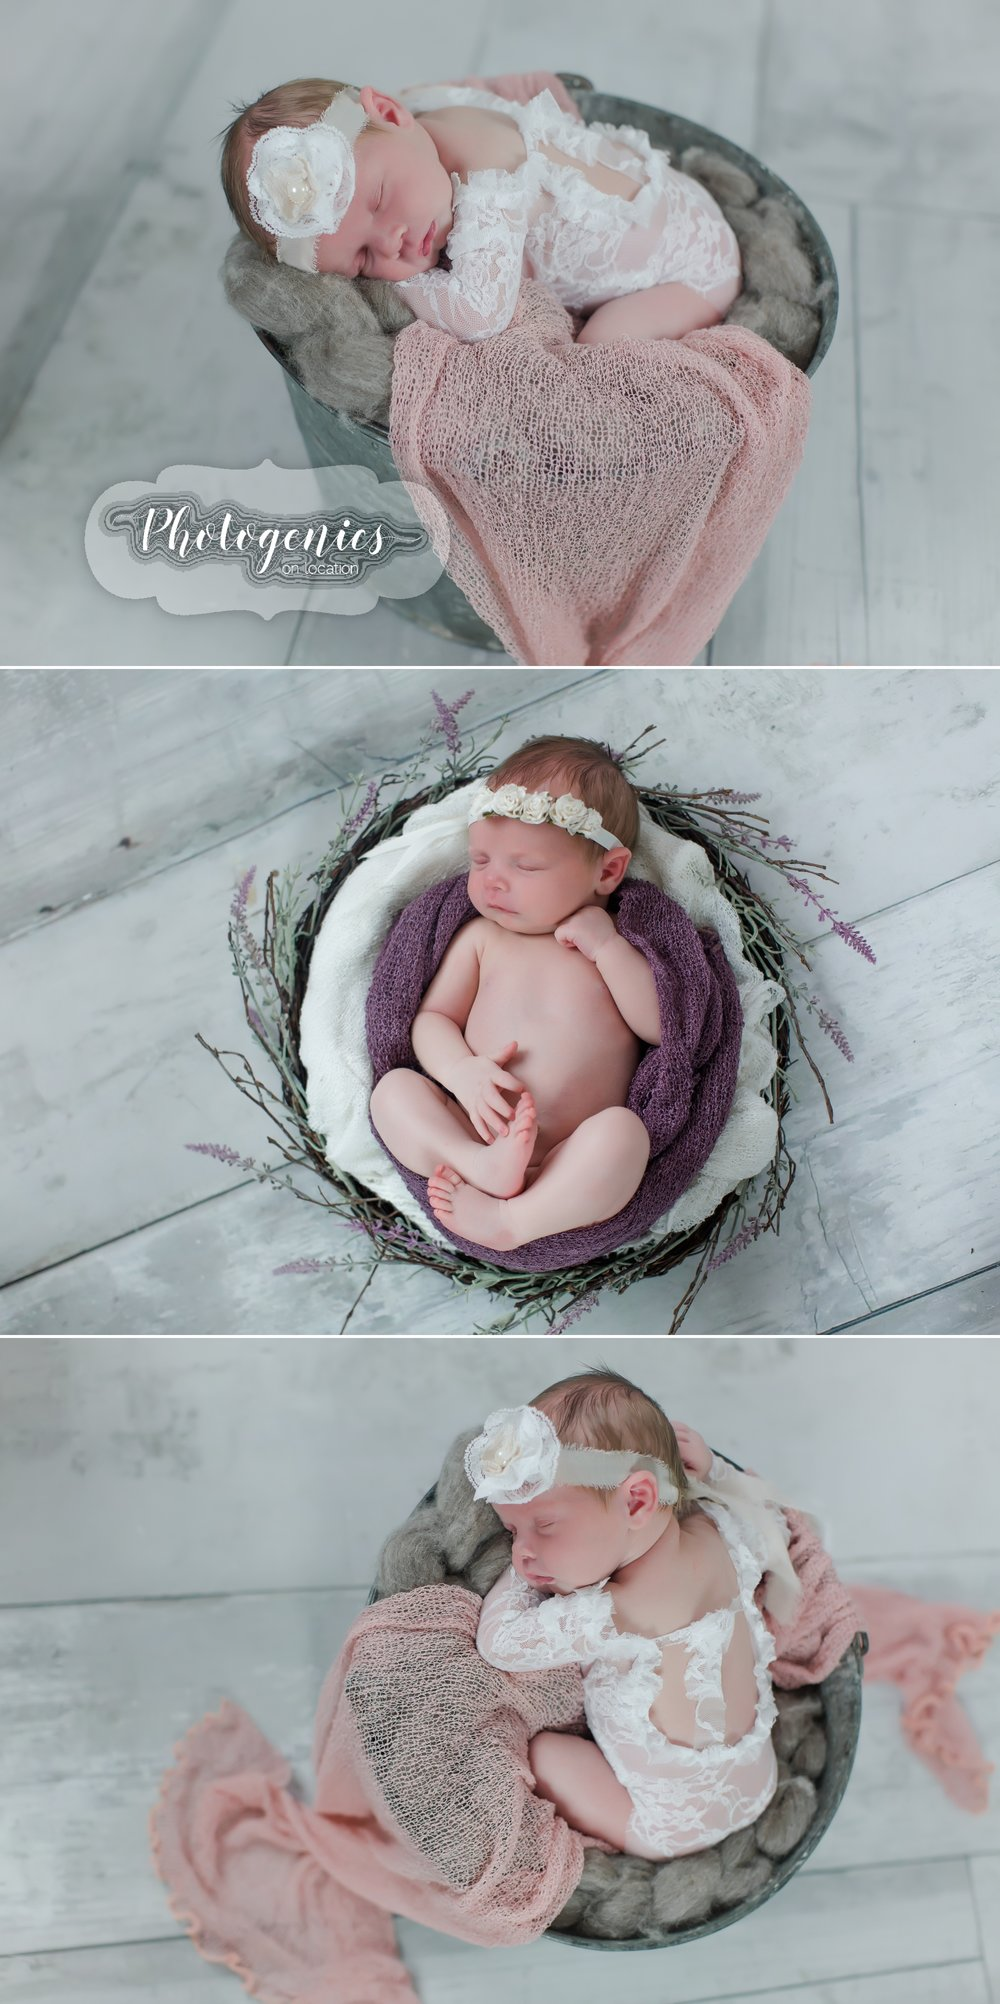 newborn_girl_photography_wrap_sibling_brother_parents_ideas_studio_flowers_colorful_baby 4.jpg